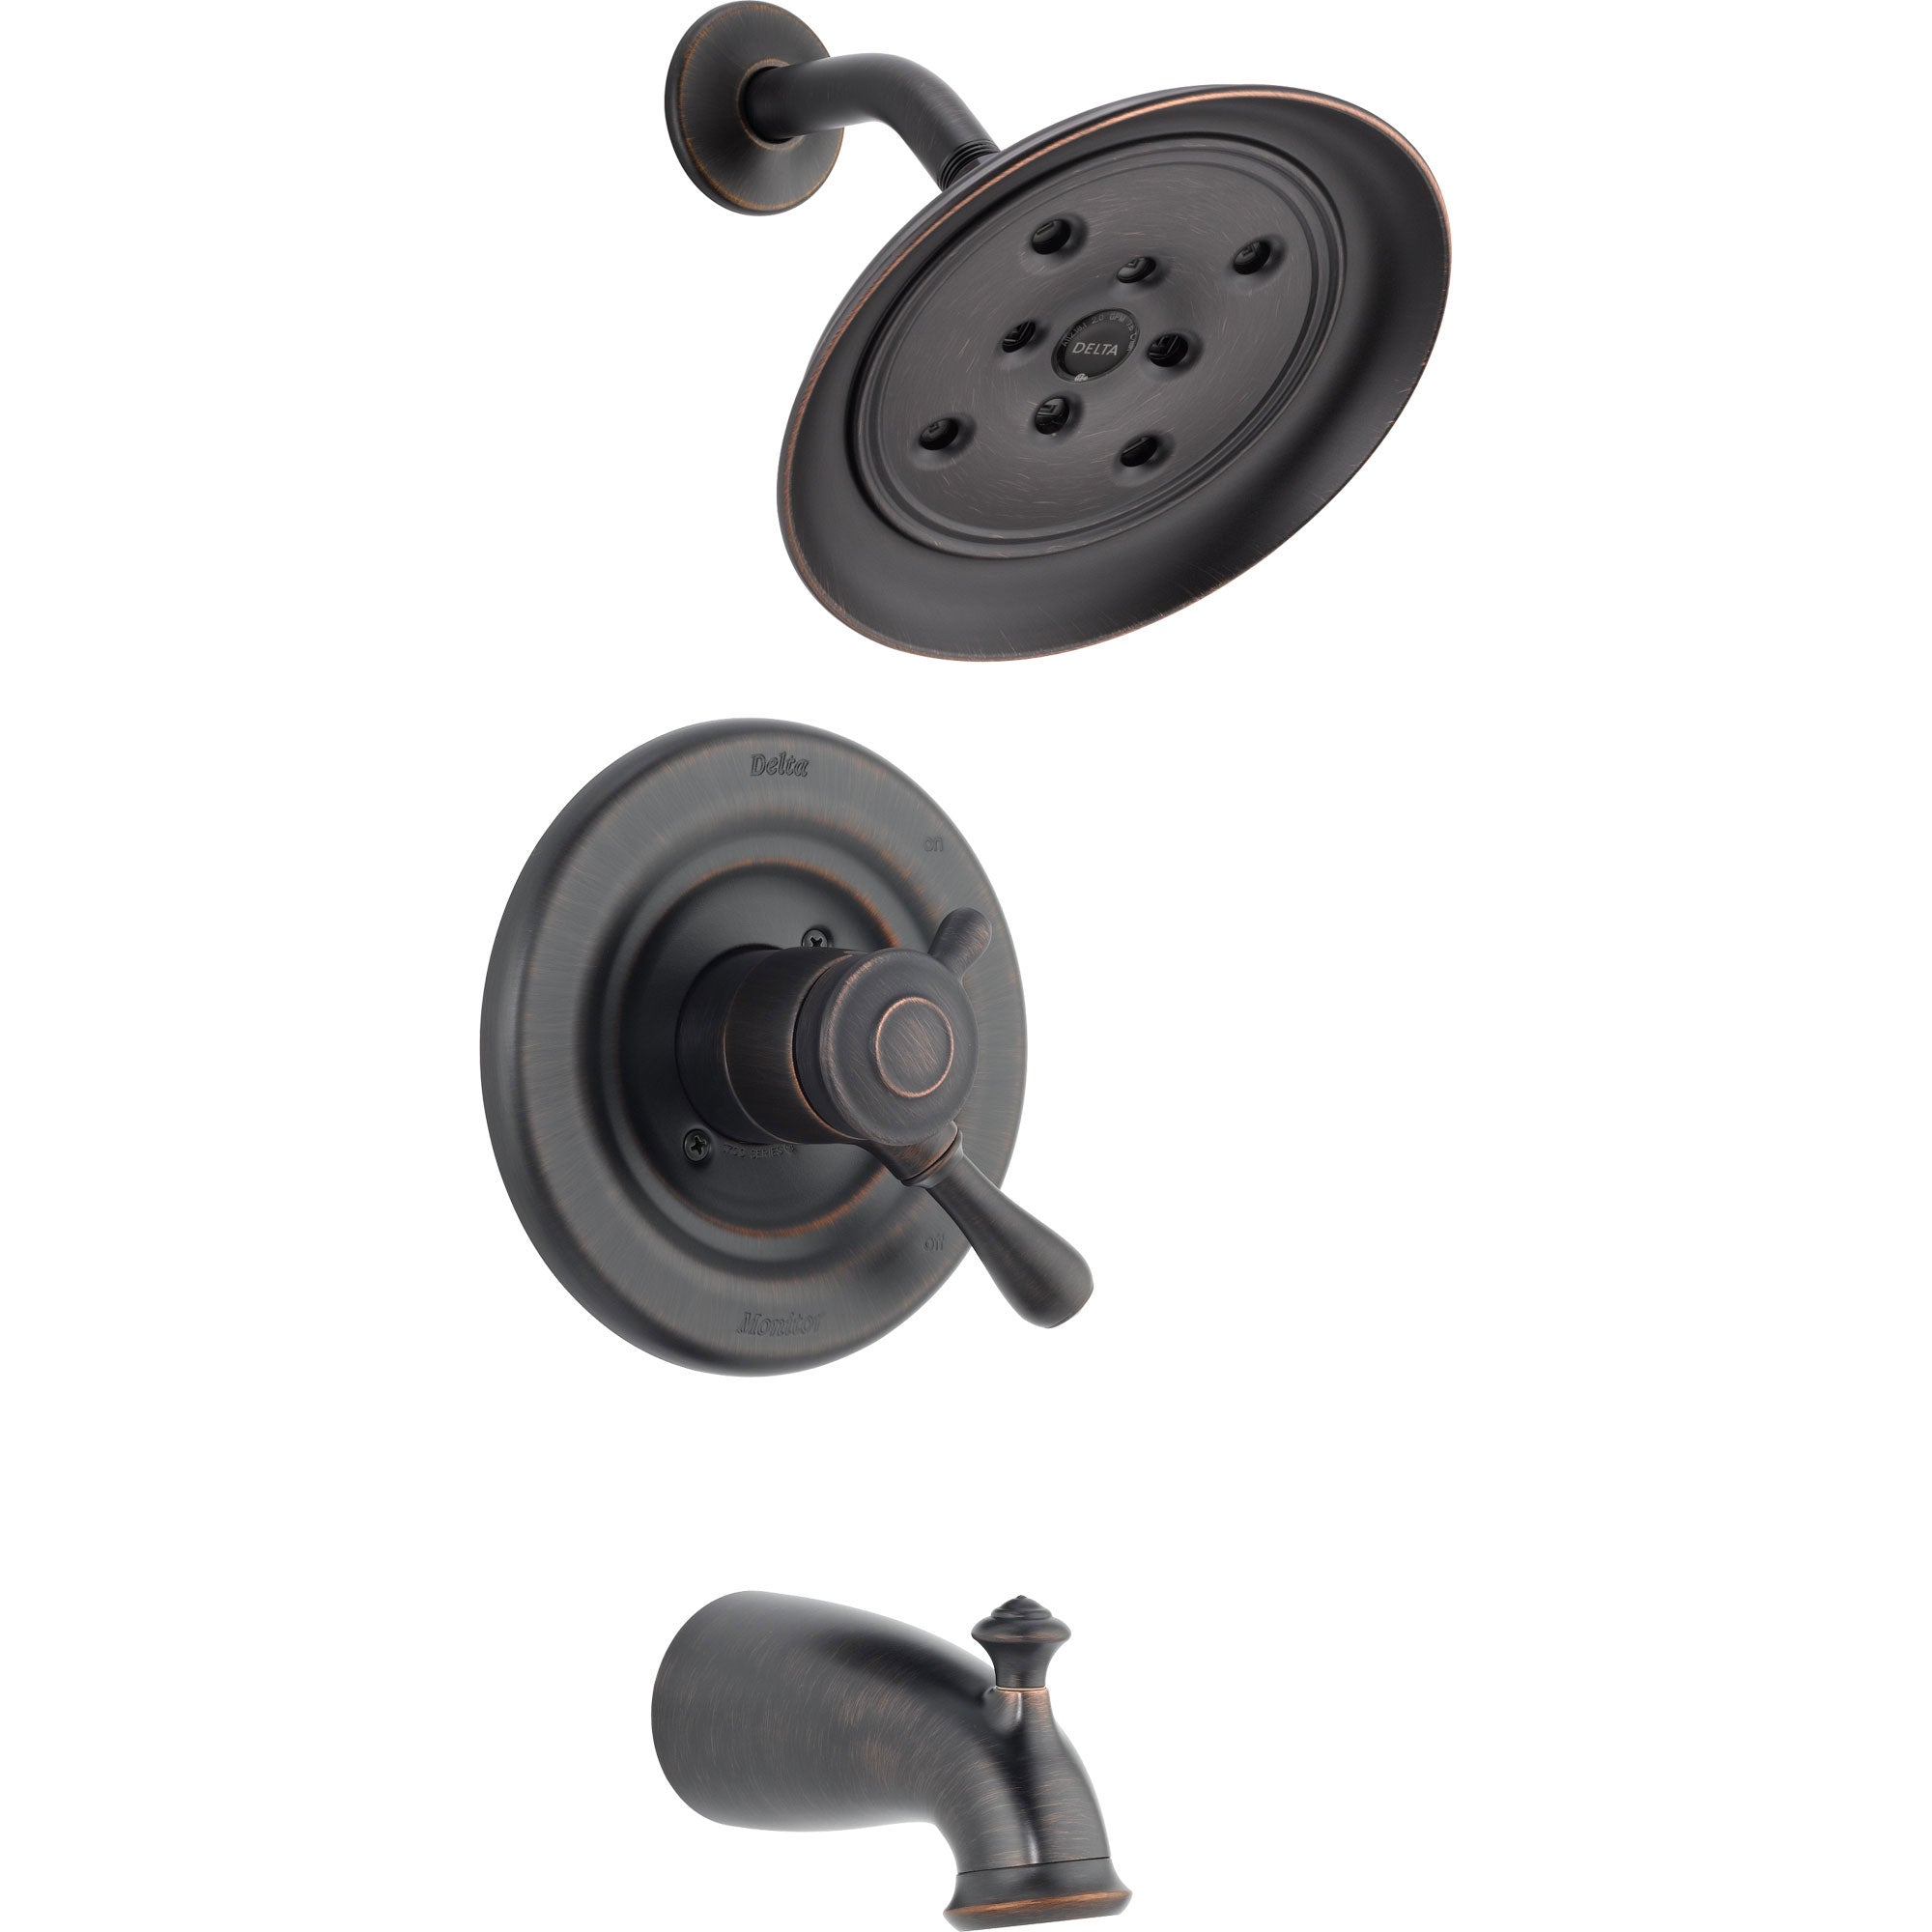 Delta Leland Venetian Bronze Dual Control Temp/Volume Tub and Shower Trim 550108